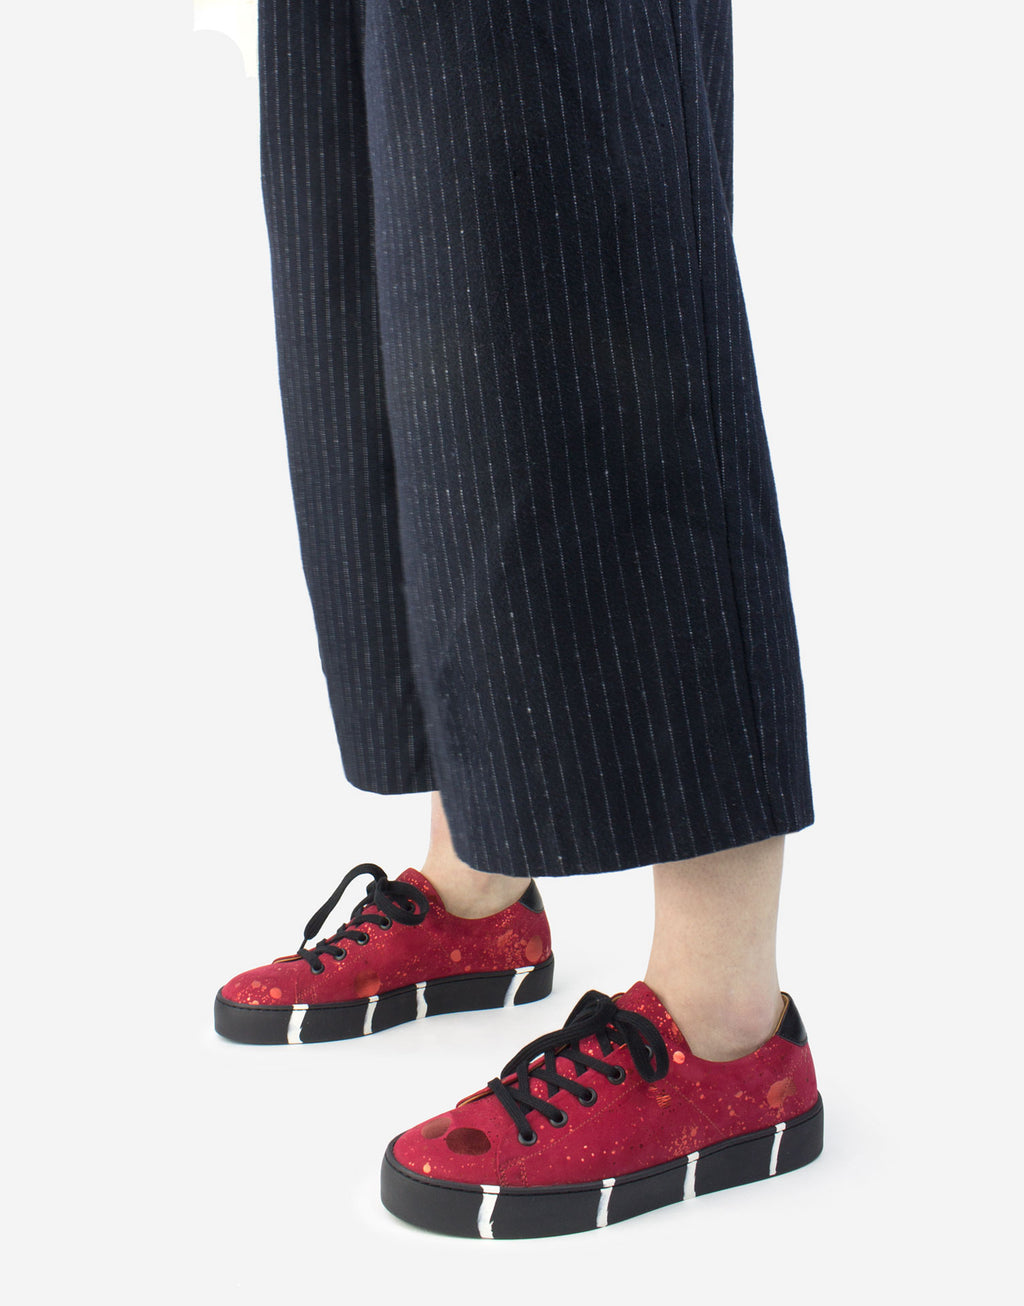 Red sneaker with striped sole by Georgina Goodman made in Portugal